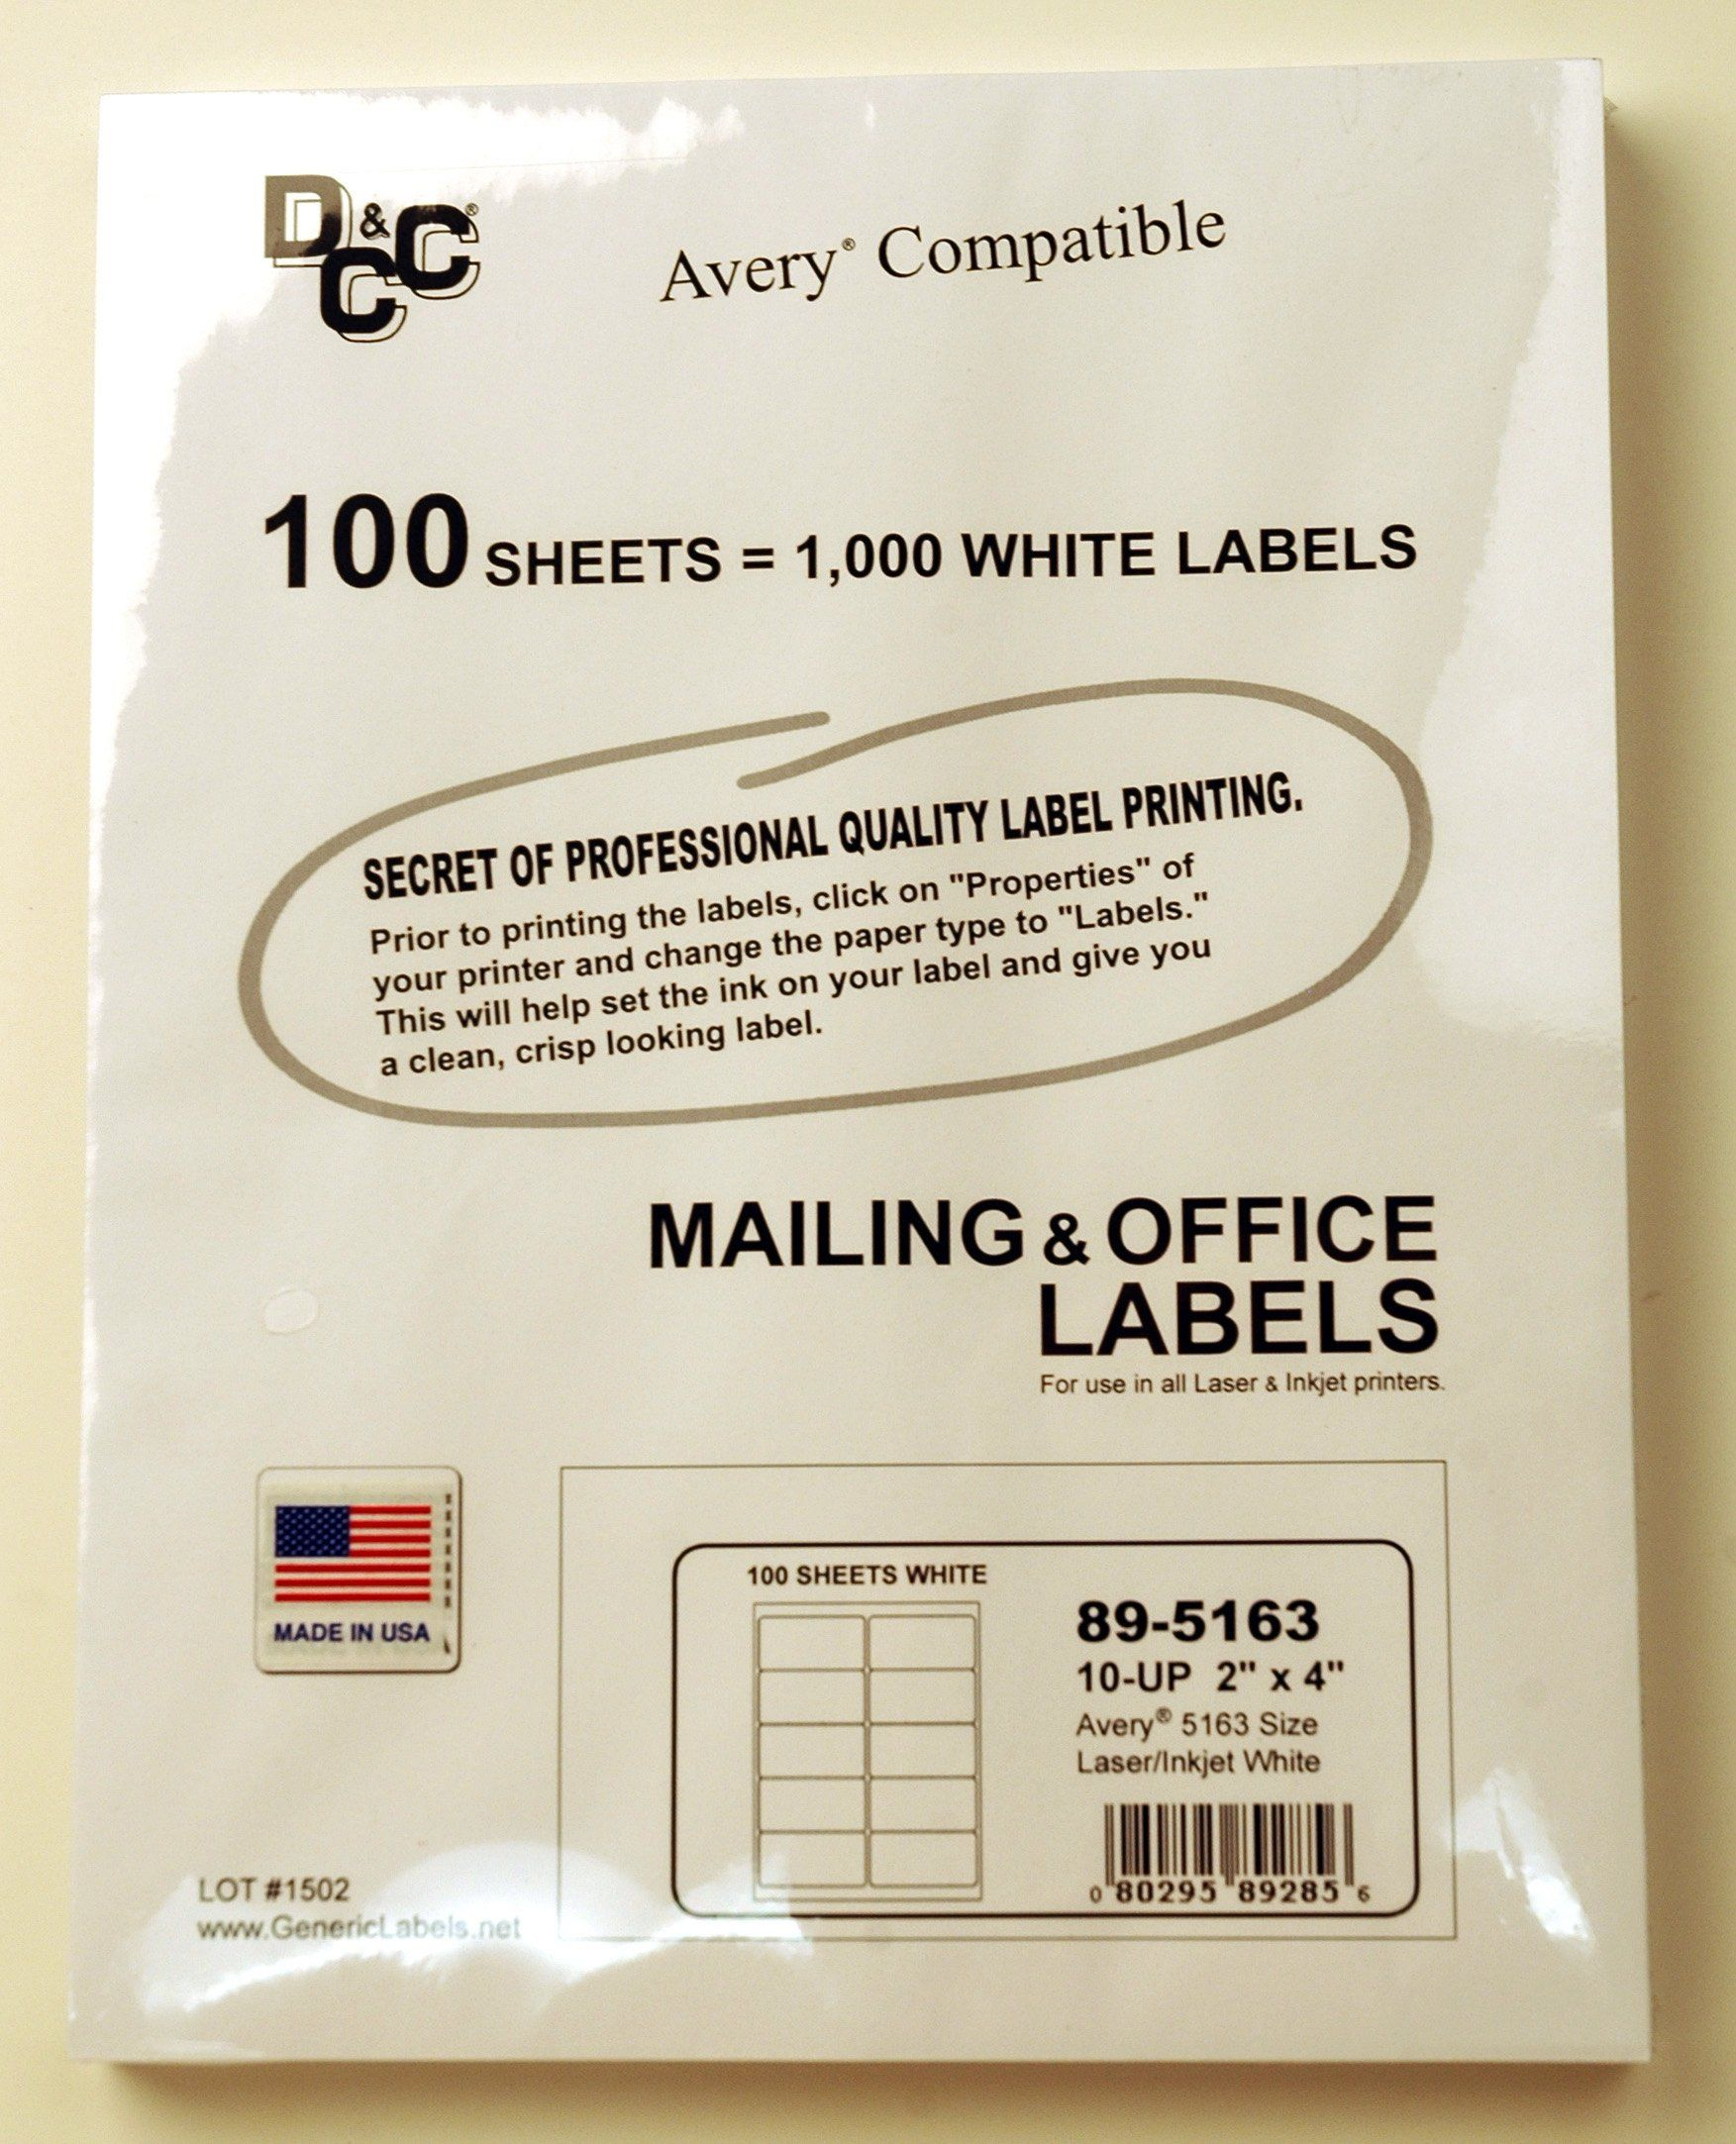 Amazon Com Dcc Generic White Self Adhesive Mailing Labels 2 X 4 Avery 5163 Size Pack 100 Sheets Shippi Avery Shipping Labels Printing Labels Shipping Labels Avery shipping labels 5163 template